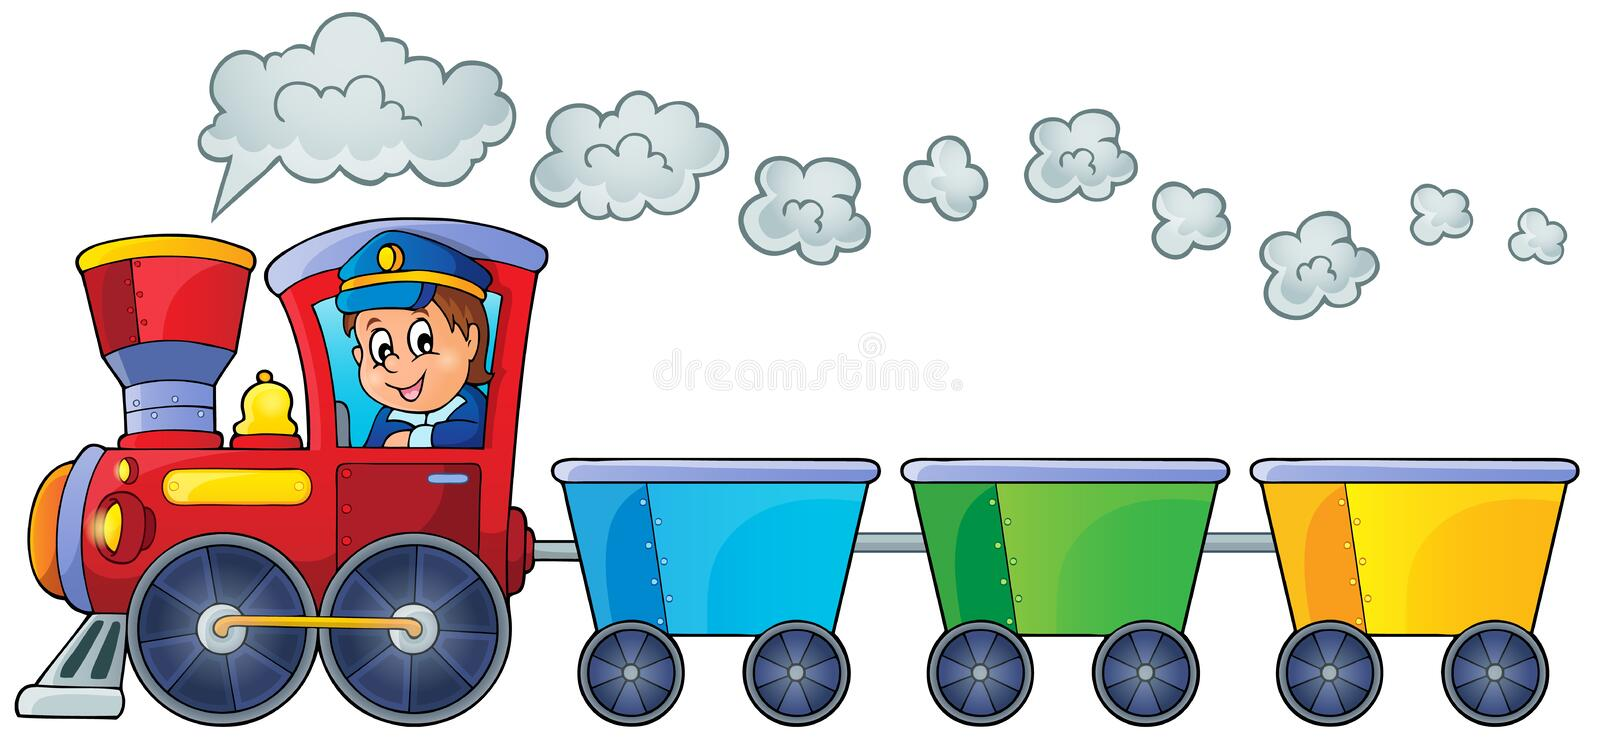 Train with three empty wagons. Eps10 vector illustration royalty free illustration